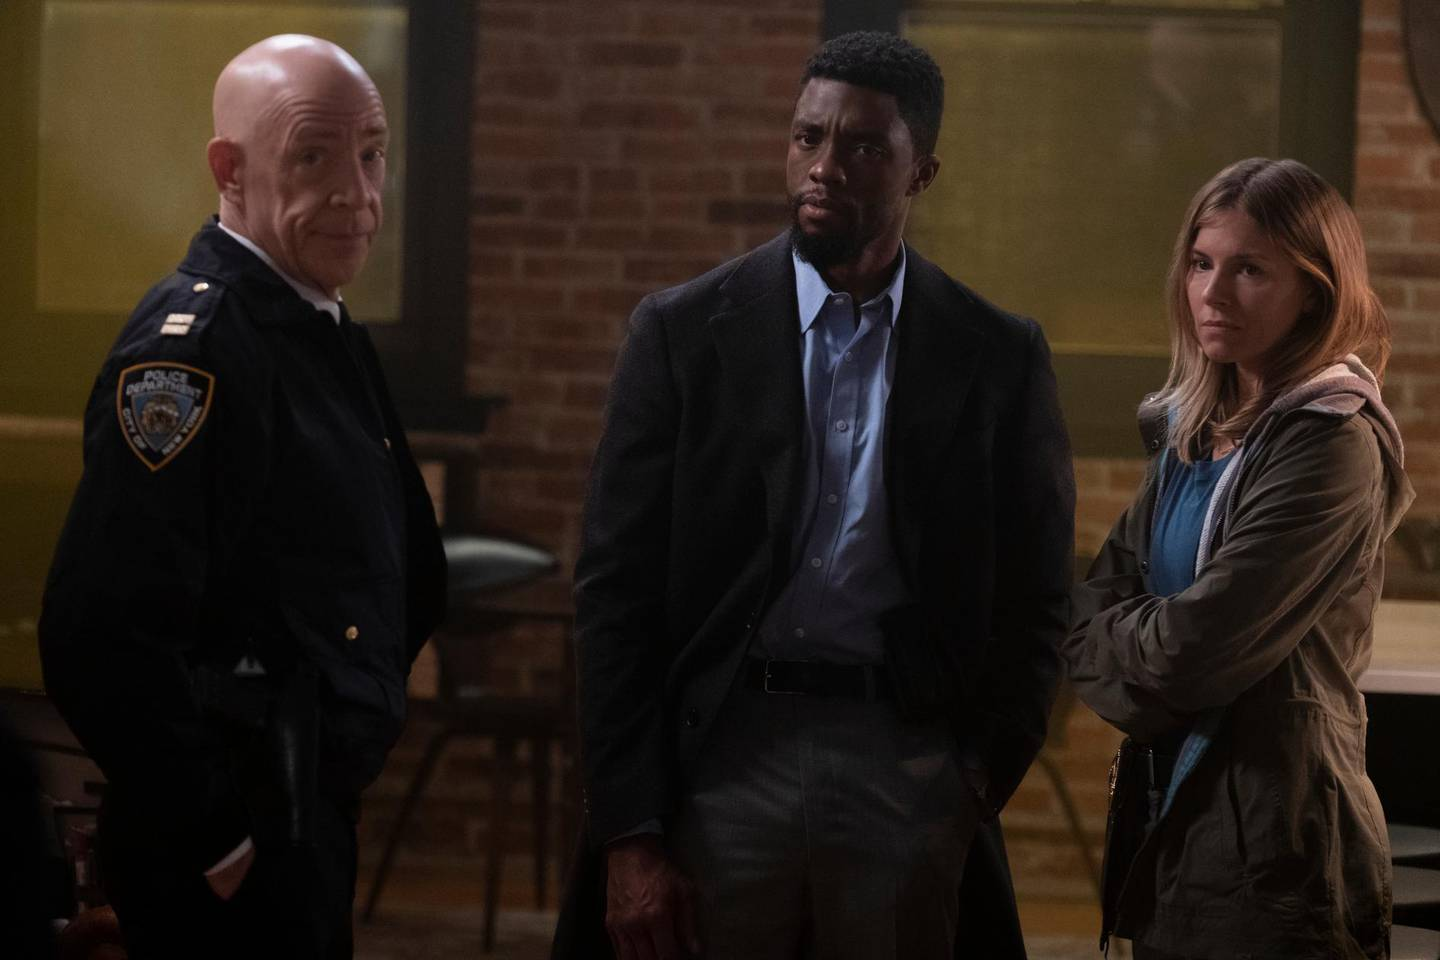 """This image released by STXfilms shows, from left, J.K. Simmons, Chadwick Boseman and Sienna Miller in a scene from """"21 Bridges,"""" in theaters on Nov. 22. (Matt Kennedy/STXfilms via AP)"""